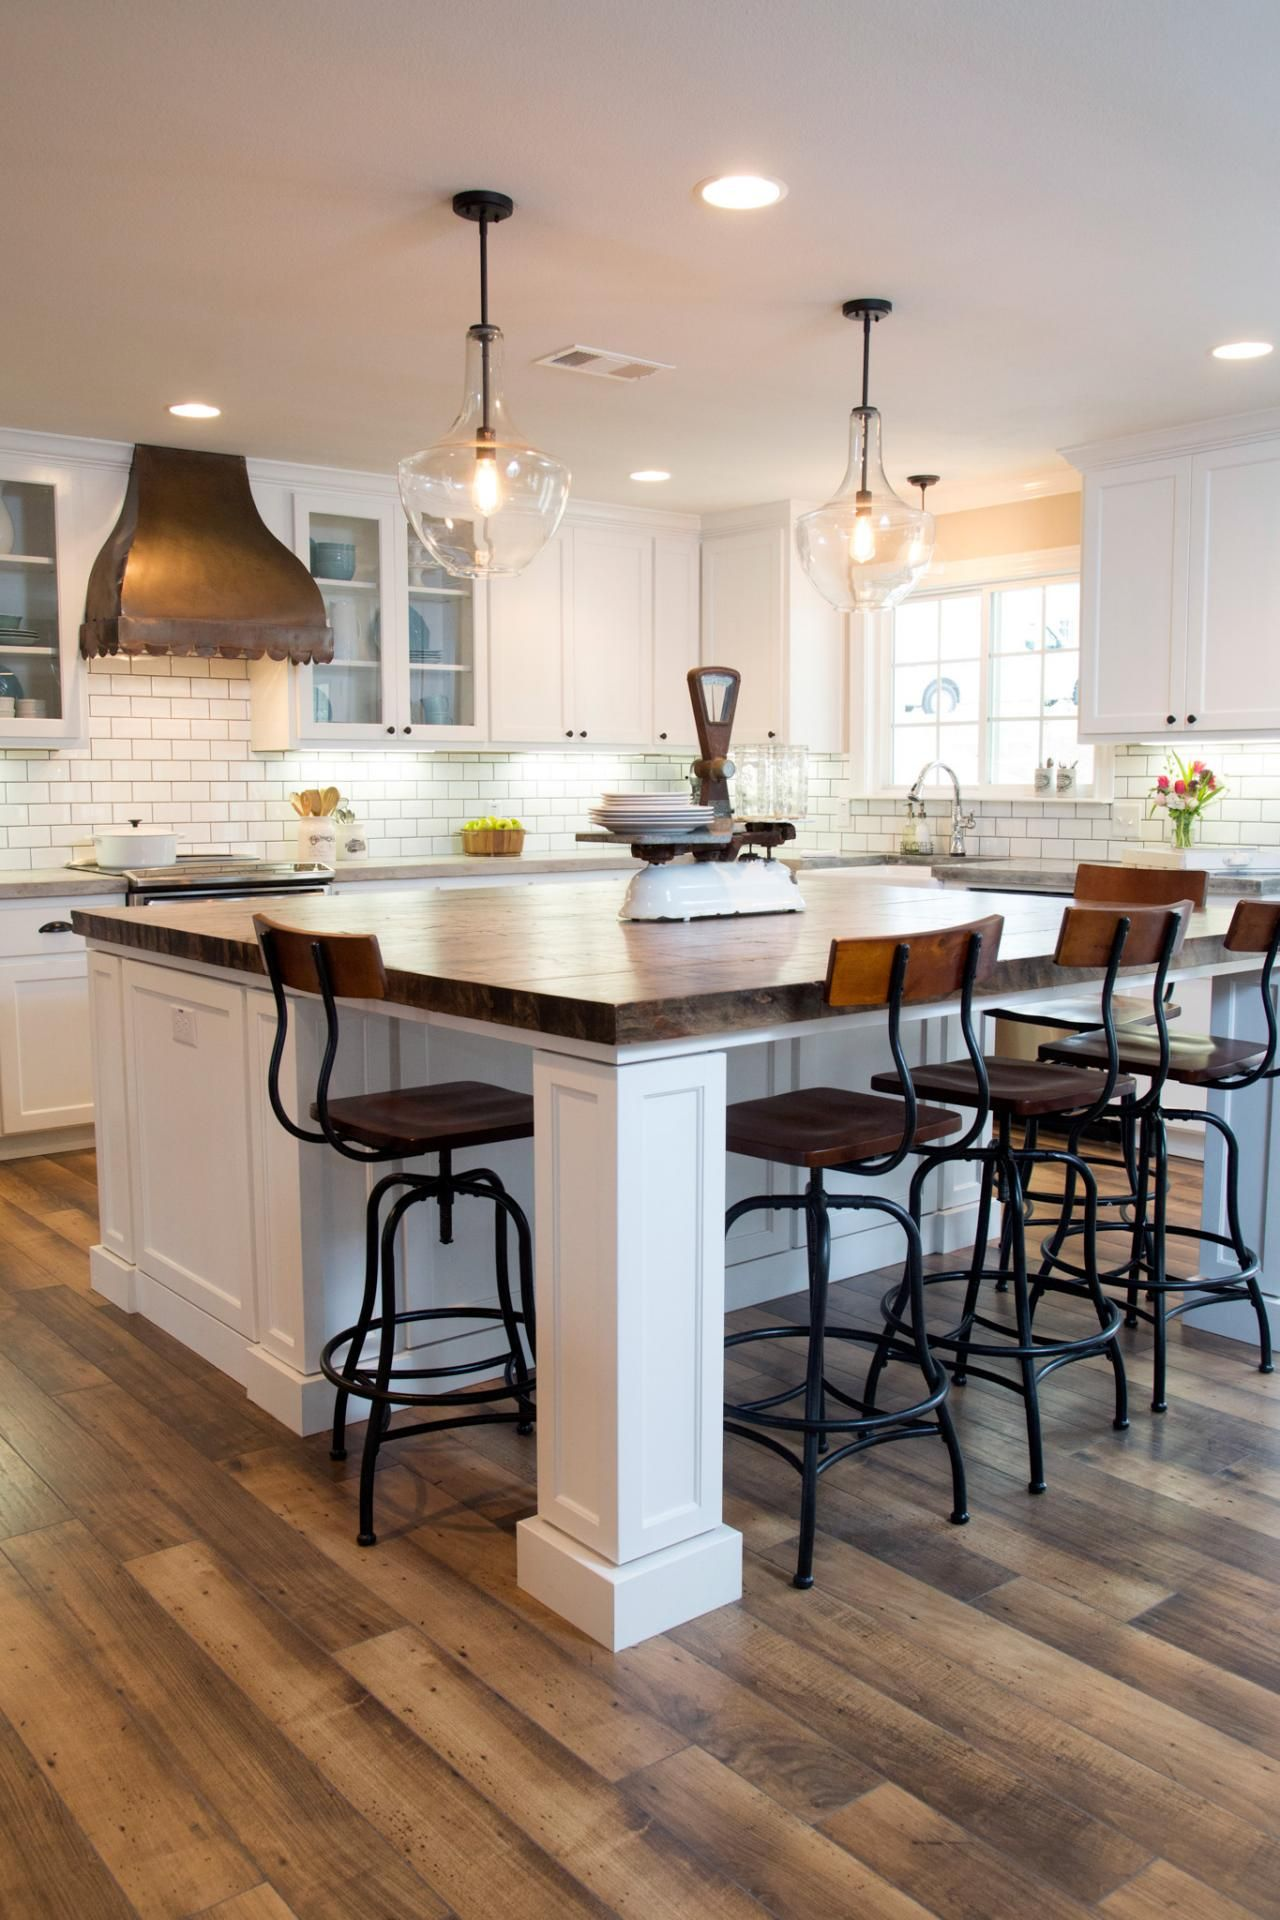 Pictures Of Kitchen Islands Apron Sink Life Is Just A Tire Swing Woodway Texas Fixer Upper House Benjamin Moore Revere Pewter Hgtv